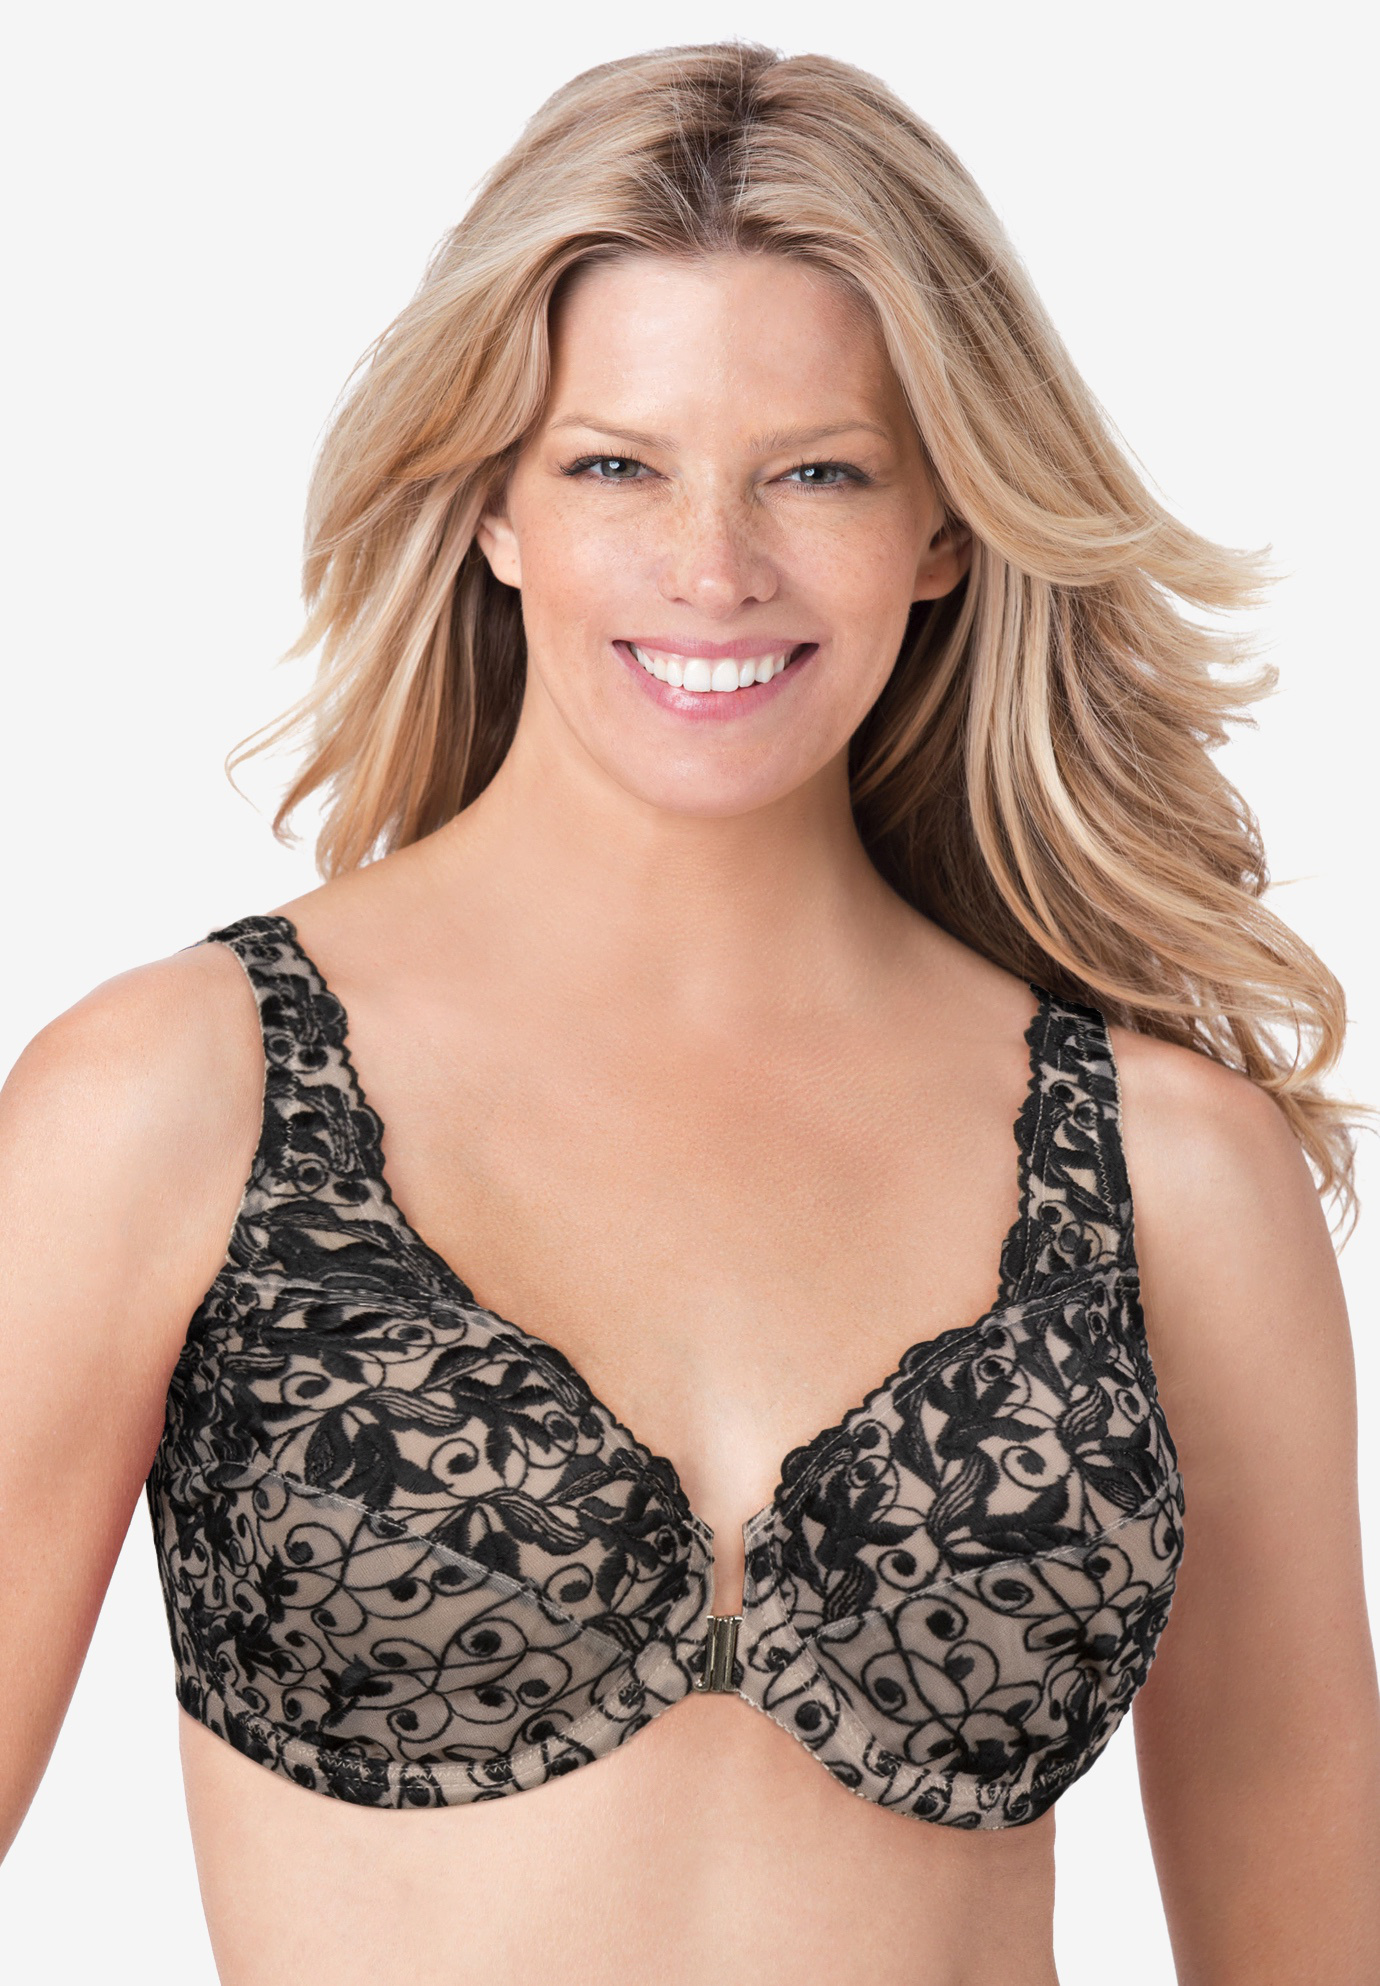 Amoureuse Embroidered Underwire Bra with Front Closure, LIGHT TAUPE BLACK, hi-res